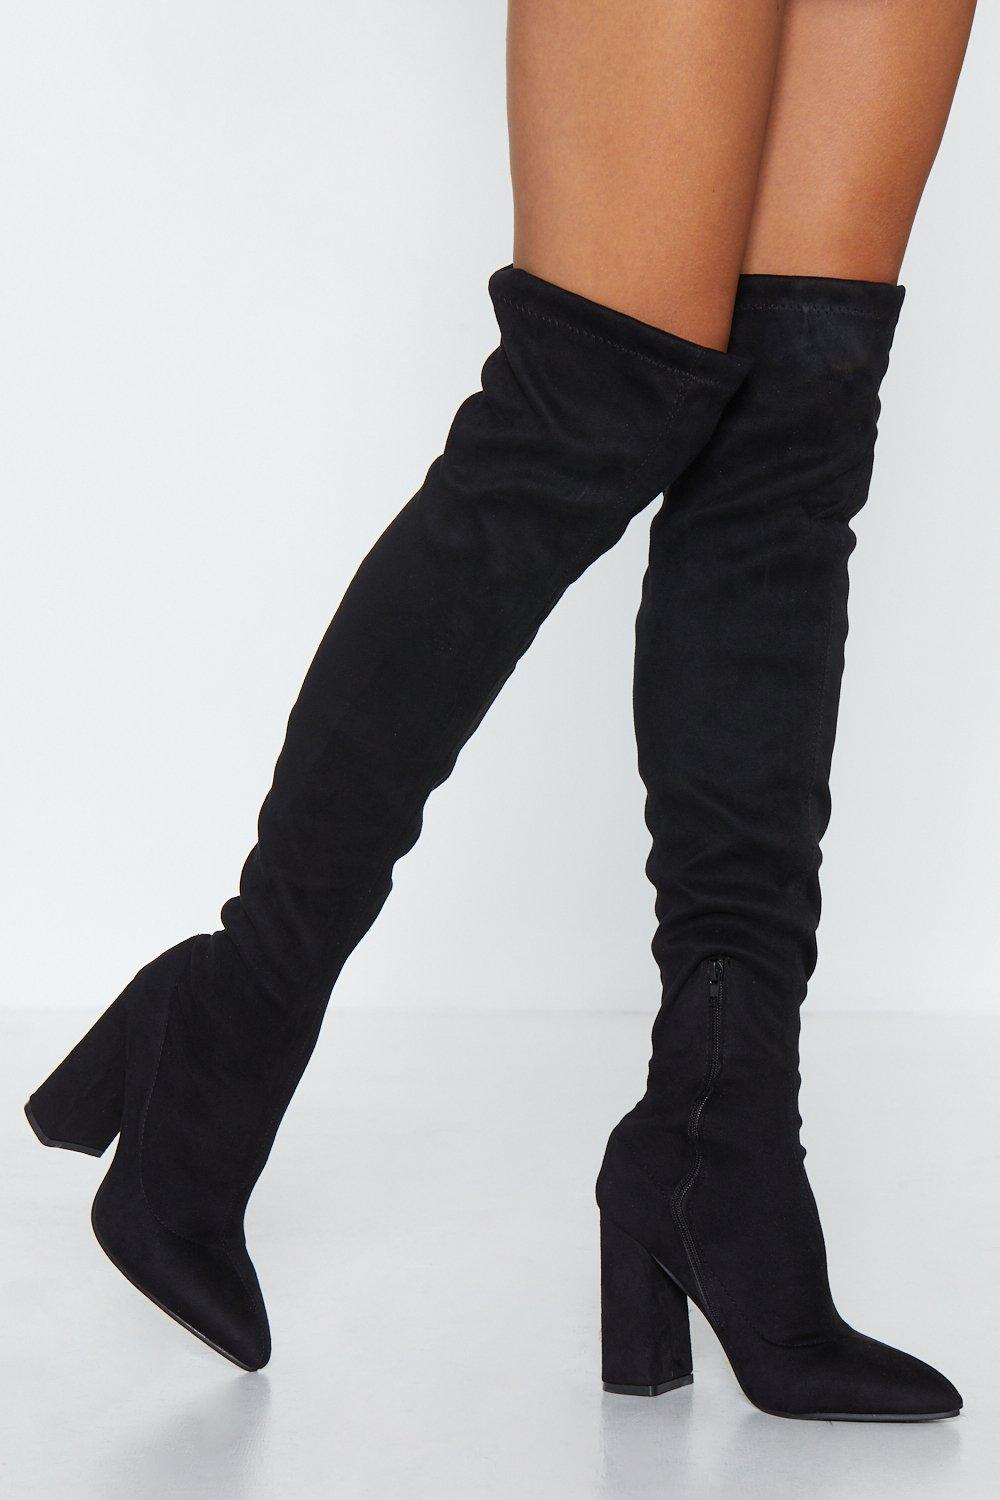 8200b98c16 Raise the Stakes Thigh-High Boot | Shop Clothes at Nasty Gal!